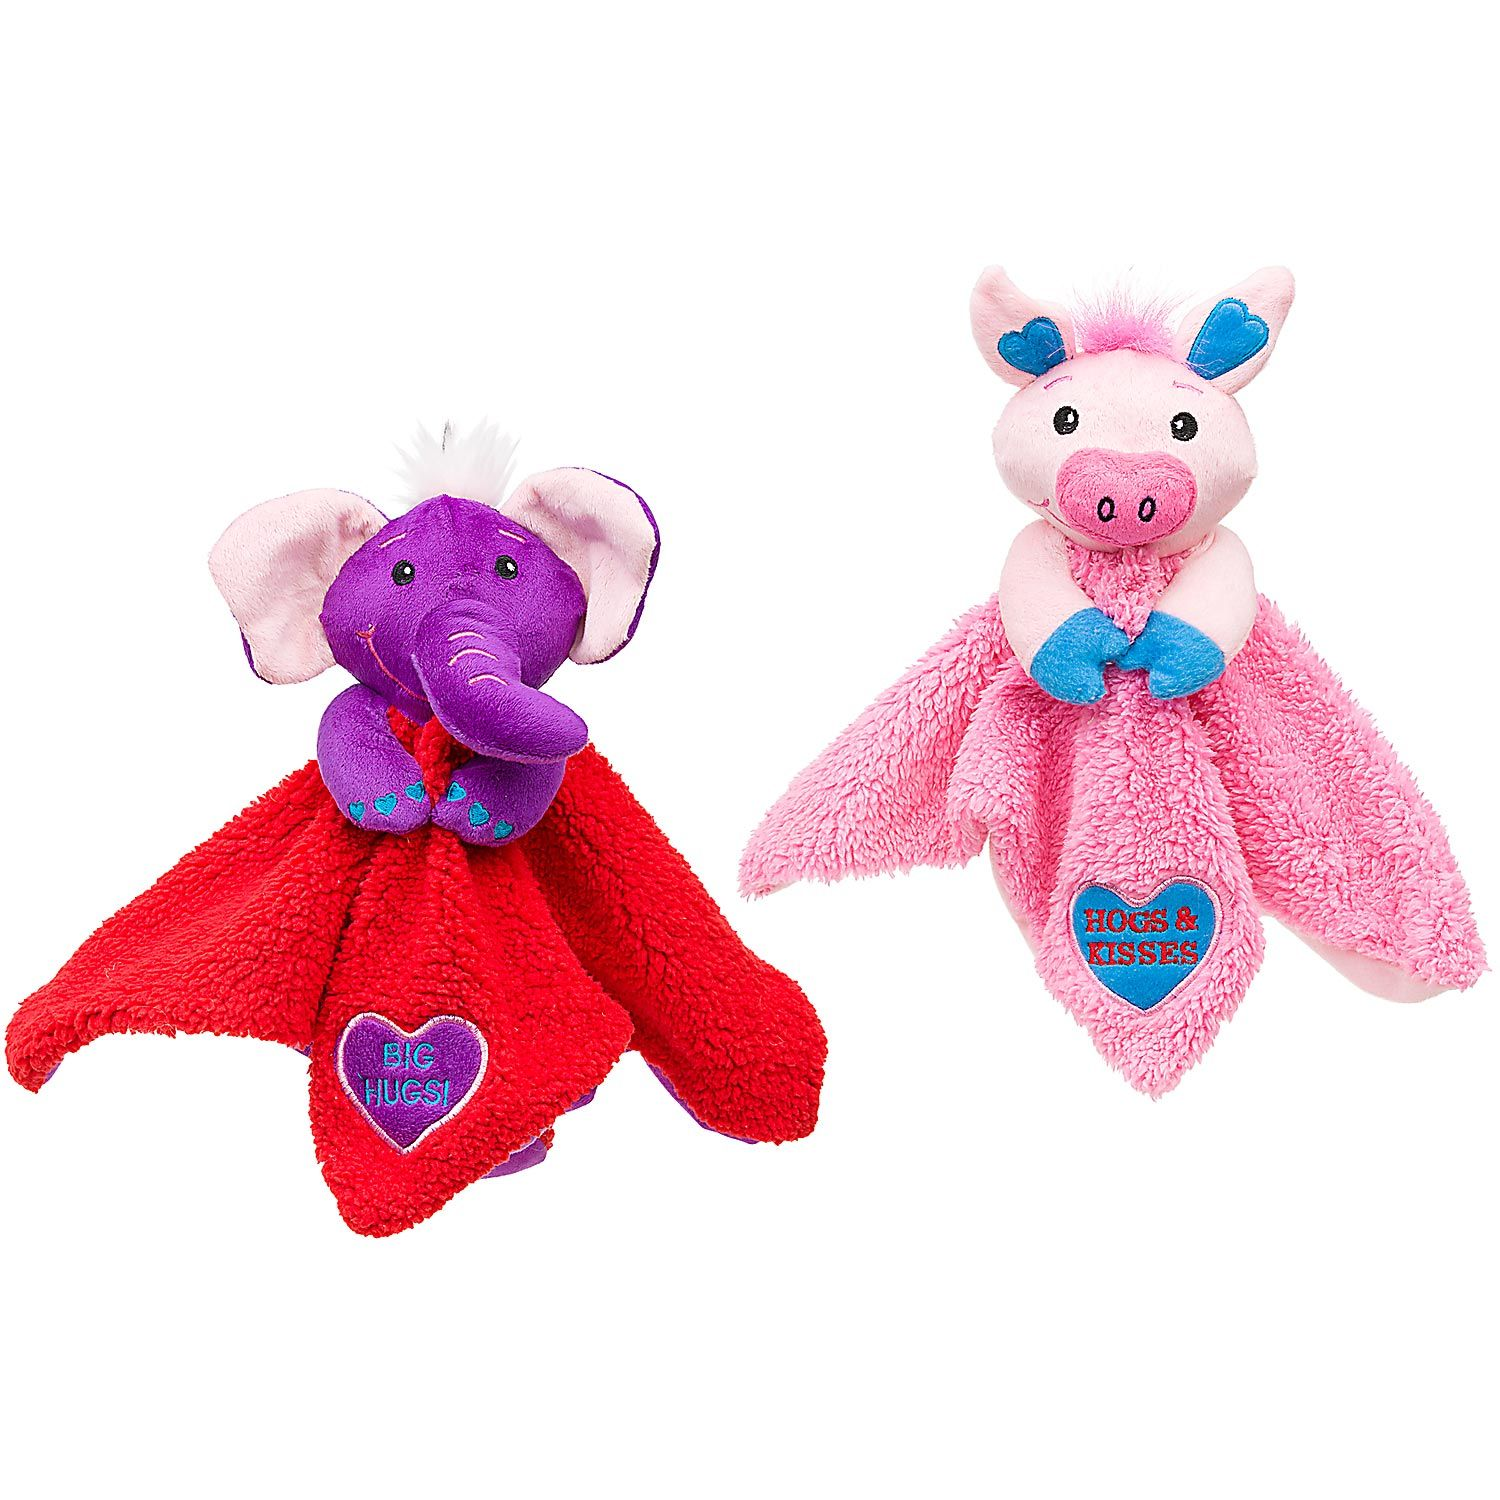 Petco Valentine Pig Or Elephant With Blanket Dog Toy Dog Toys